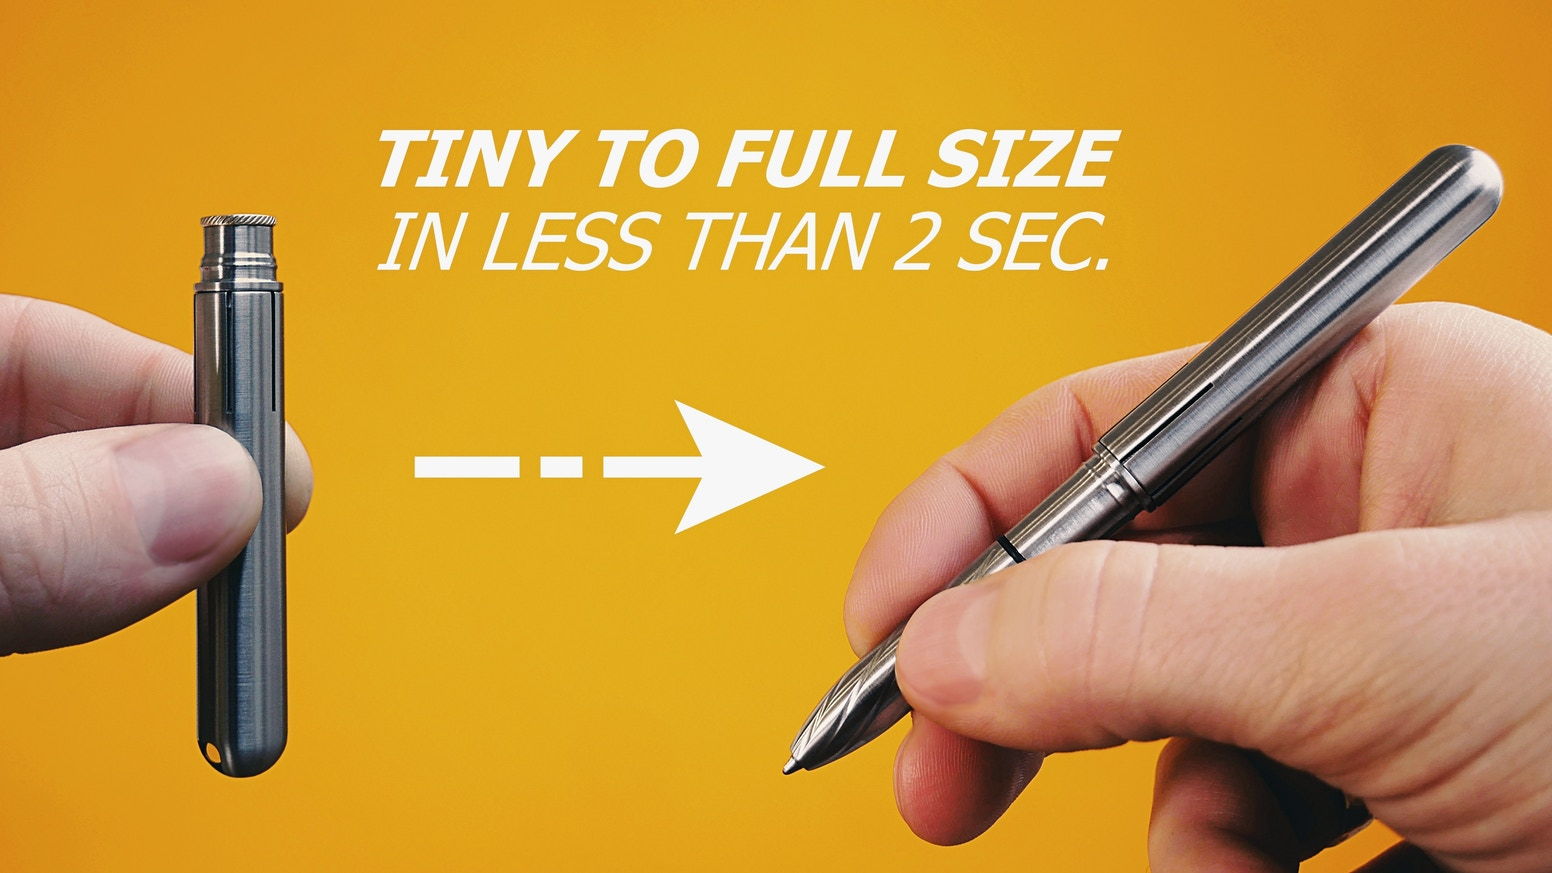 Pocket size pen that instantly transforms into convenient full size pen. Smaller than a pinkie, fits in any pocket or by your keys